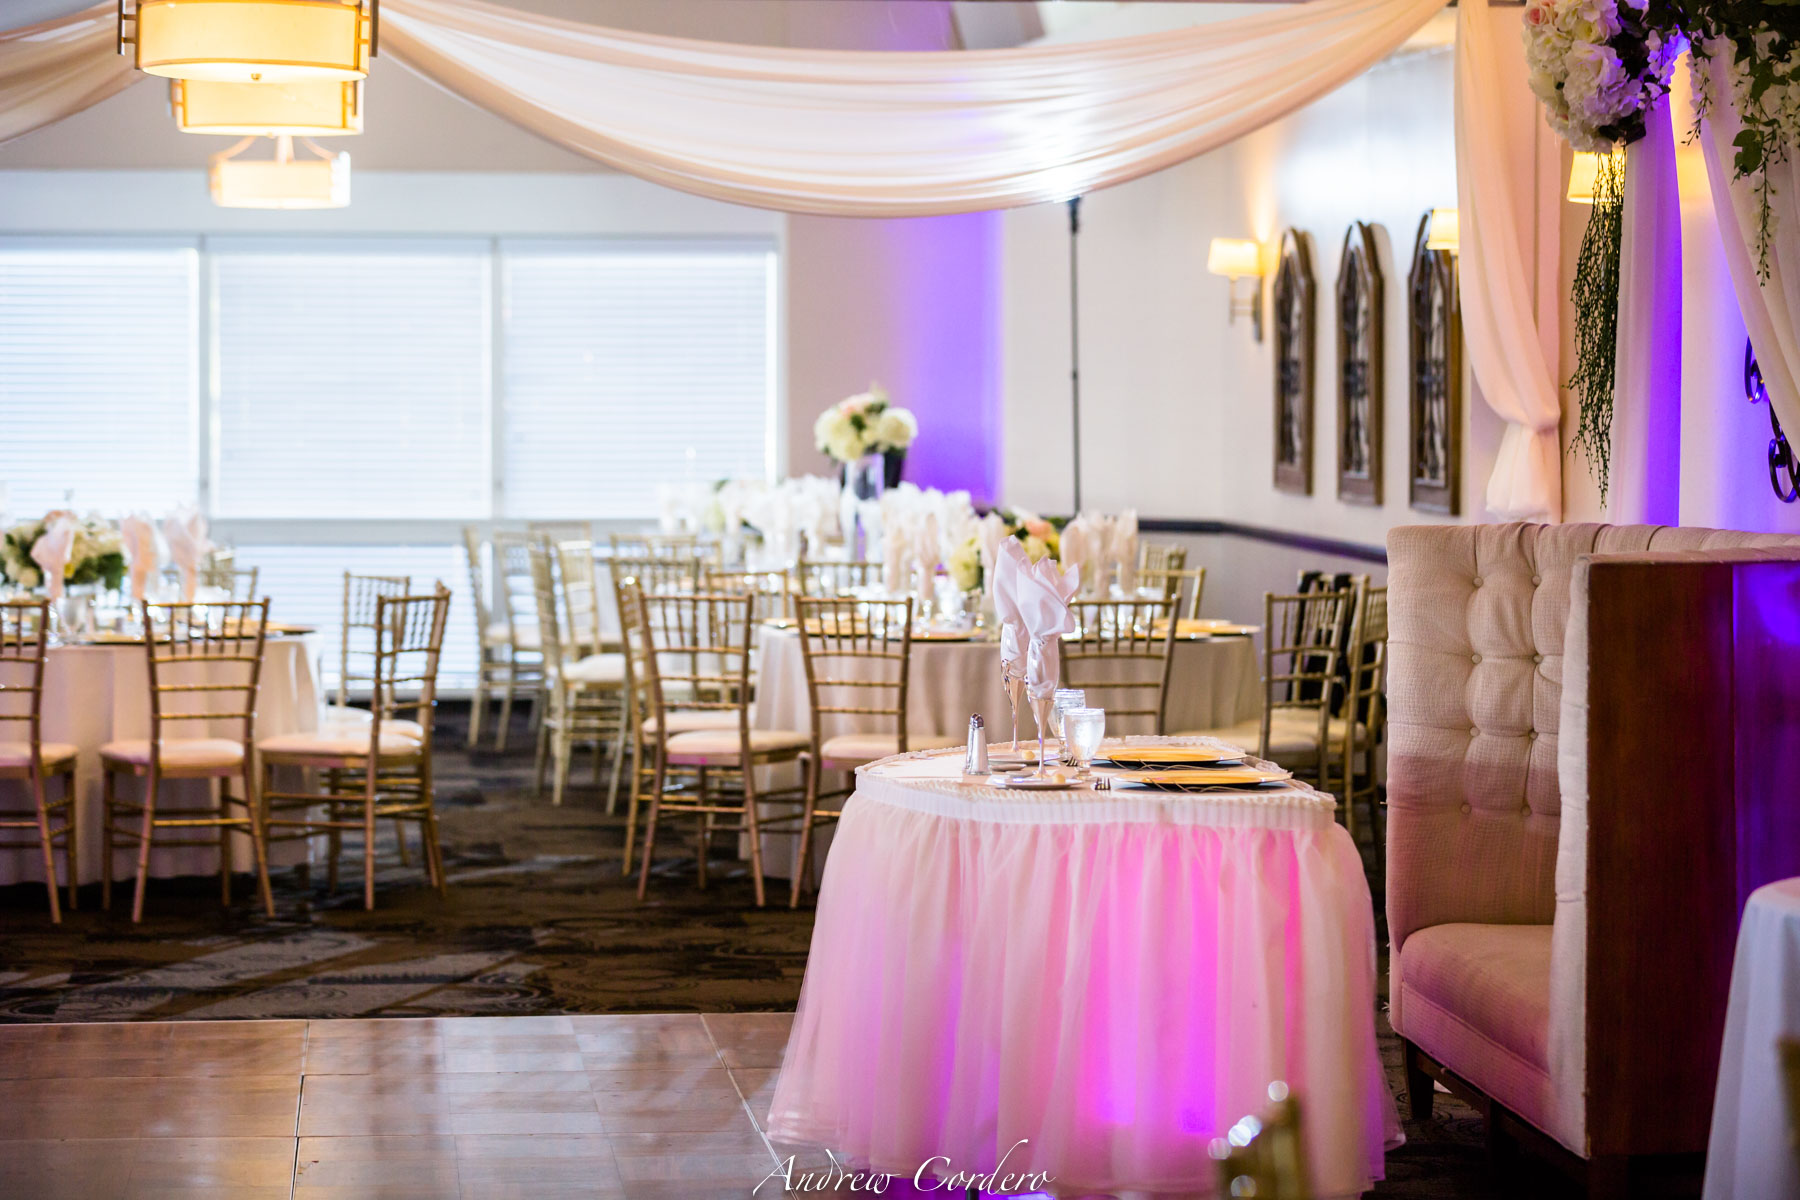 canyon-crest-country-club-riverside-wedding-jose-and-espie-1403.JPG